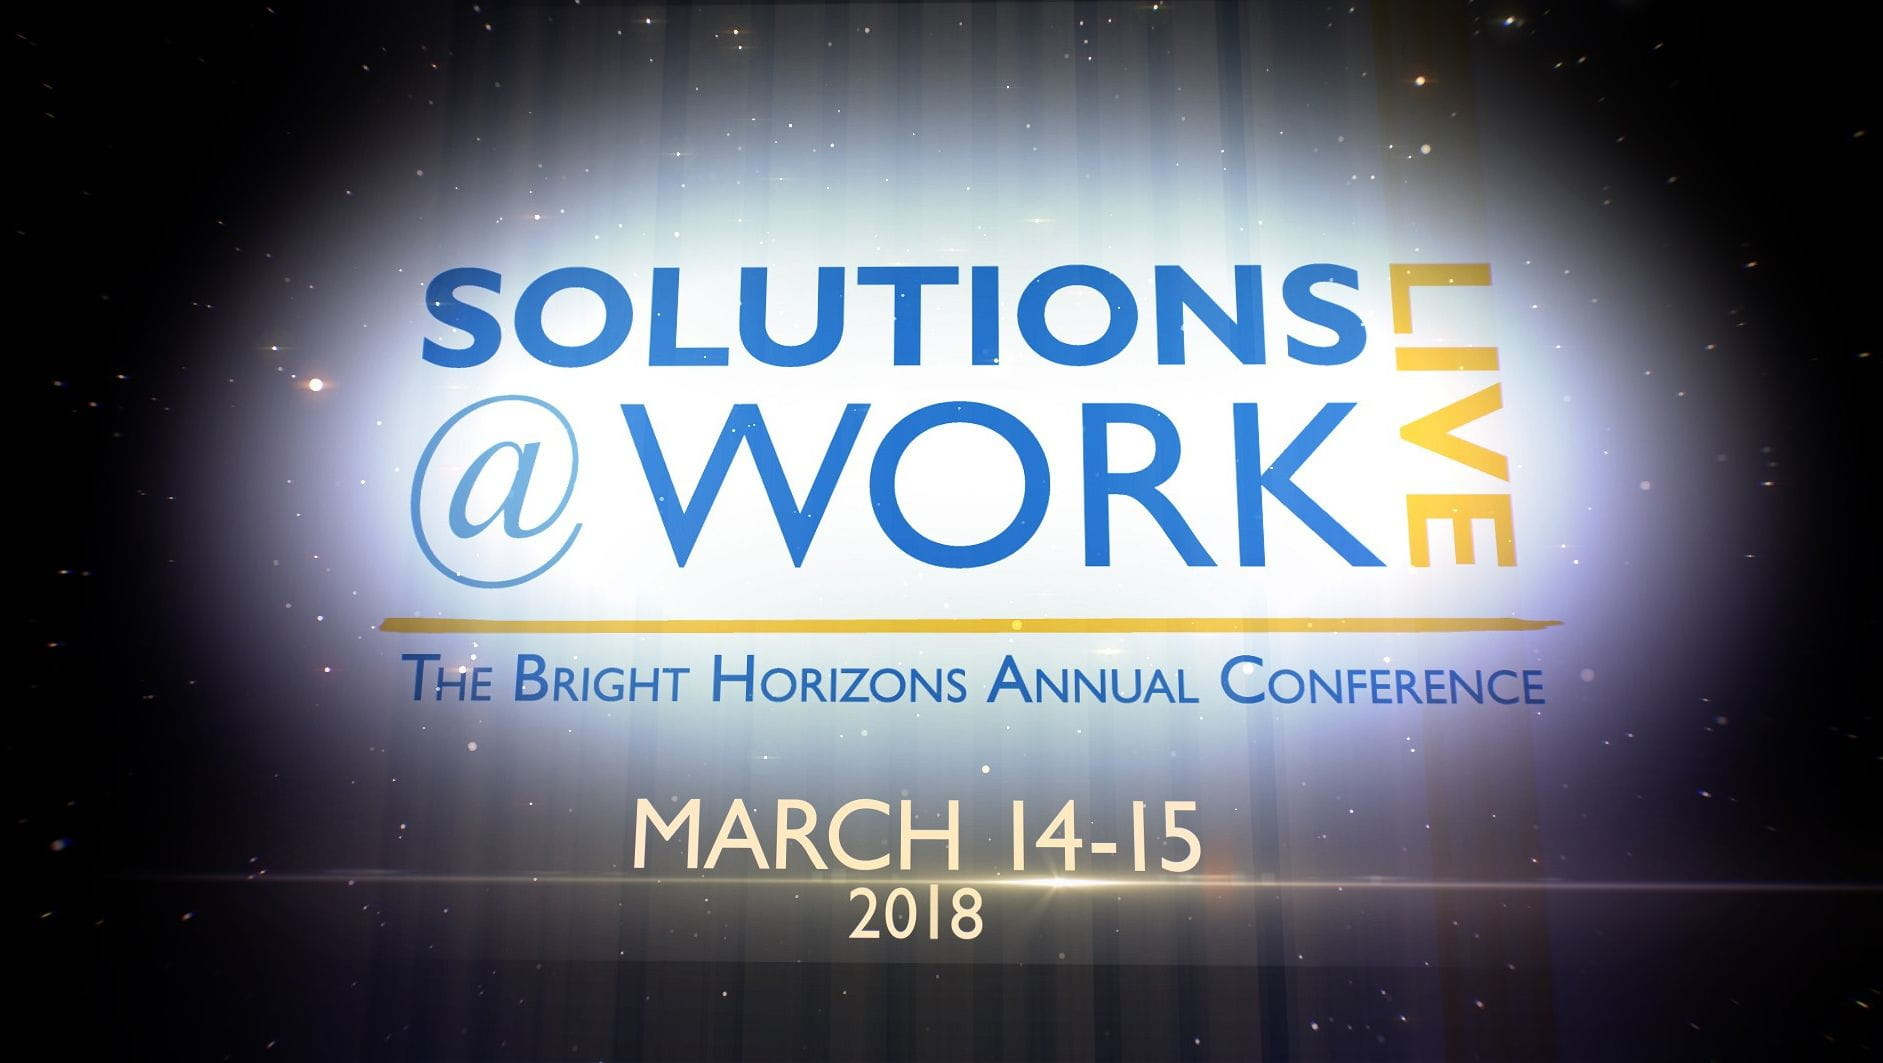 solutions at work live 2018